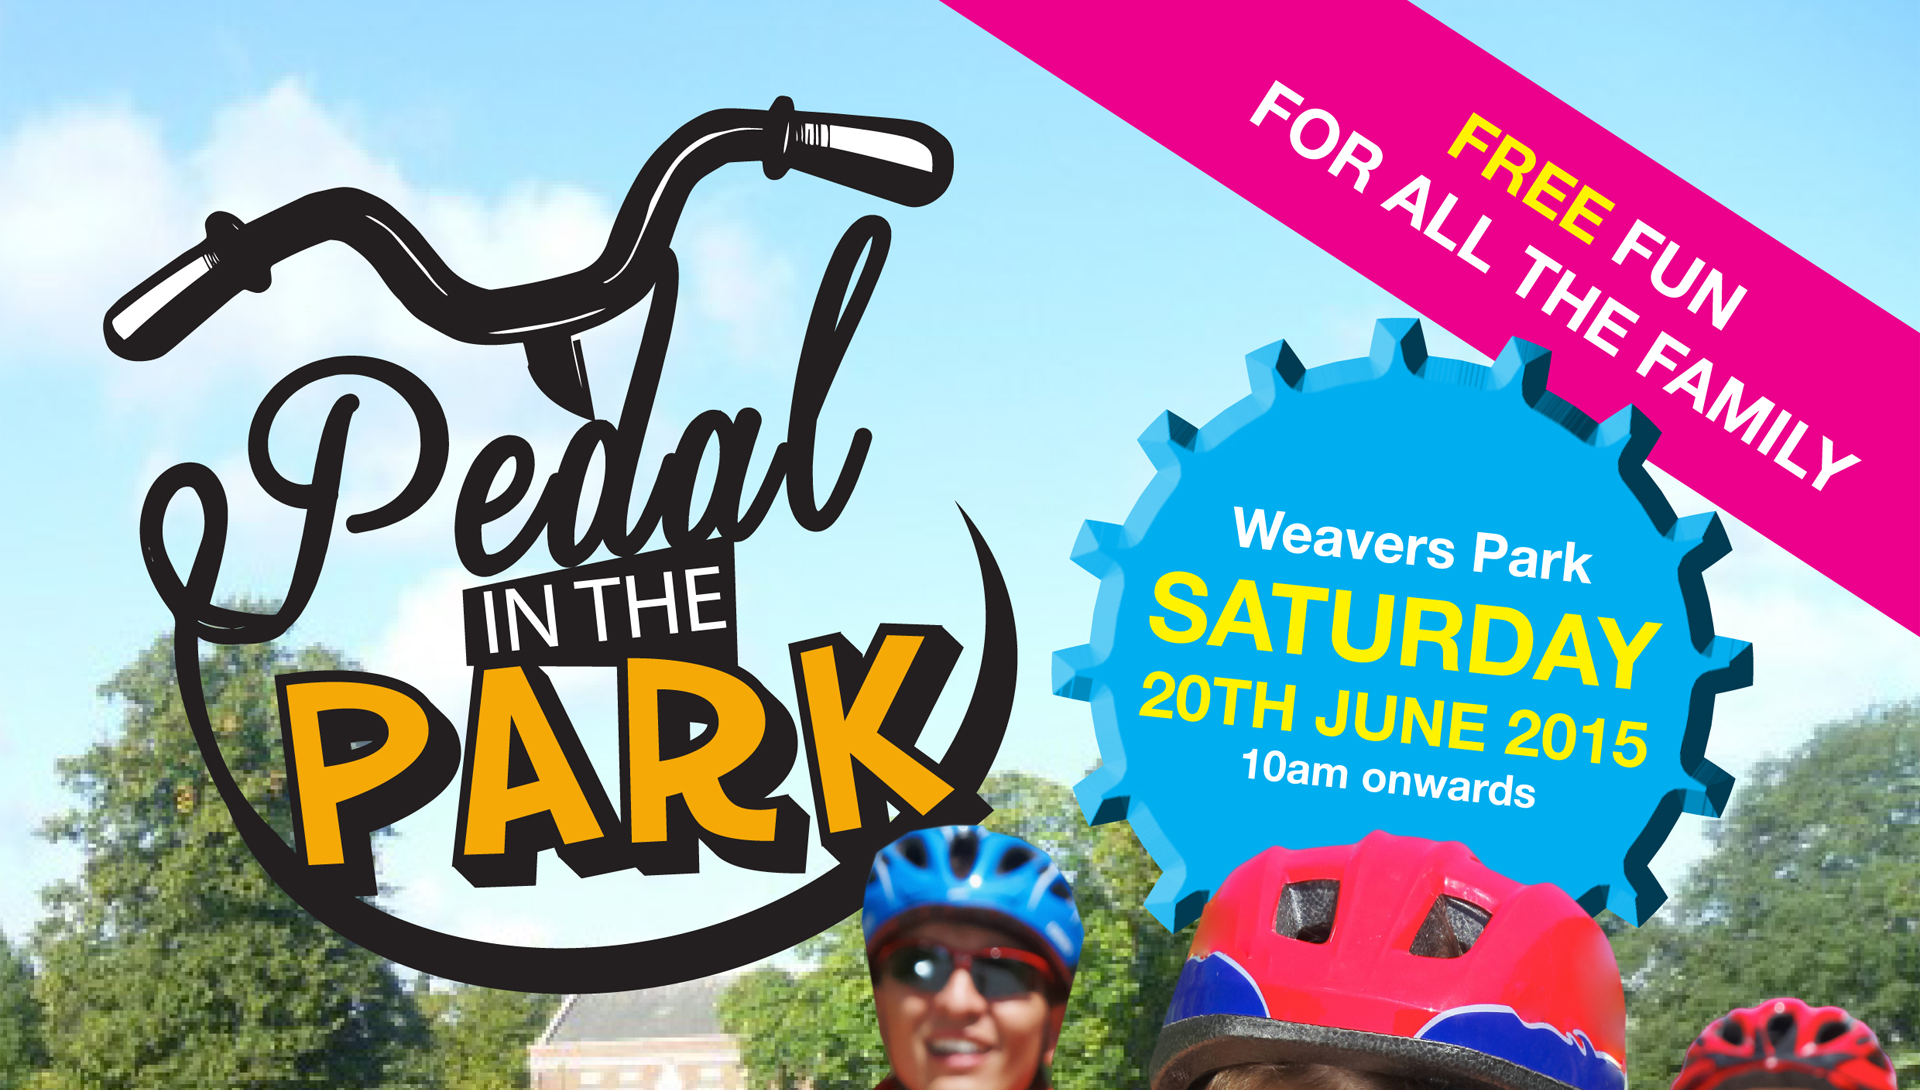 Join in the fun at Pedal in the Park in Braintree on 20 June